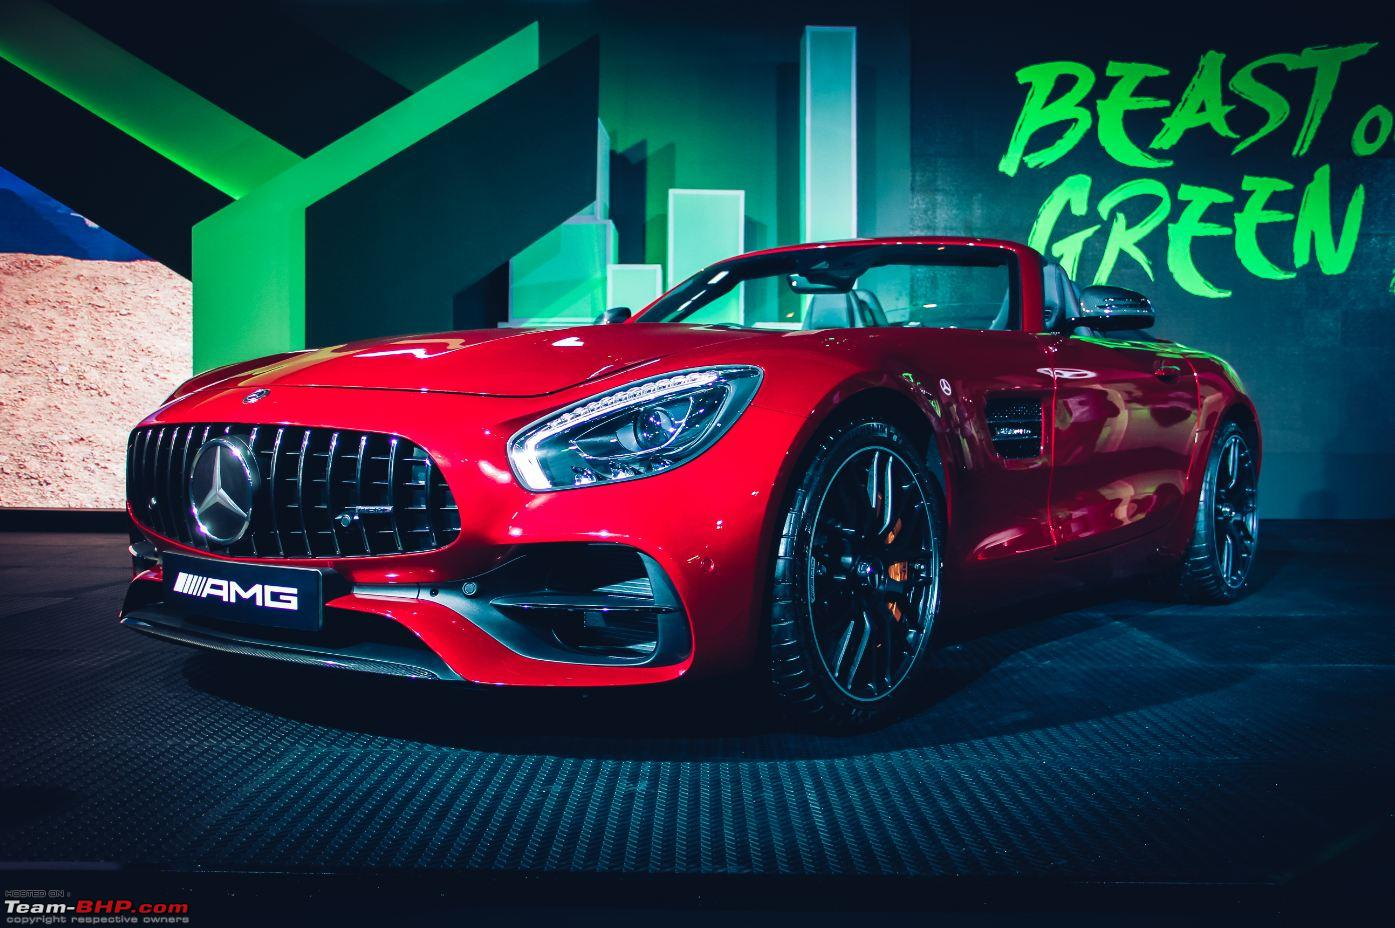 mercedes amg gt r amg gt roadster launched in india team bhp. Black Bedroom Furniture Sets. Home Design Ideas